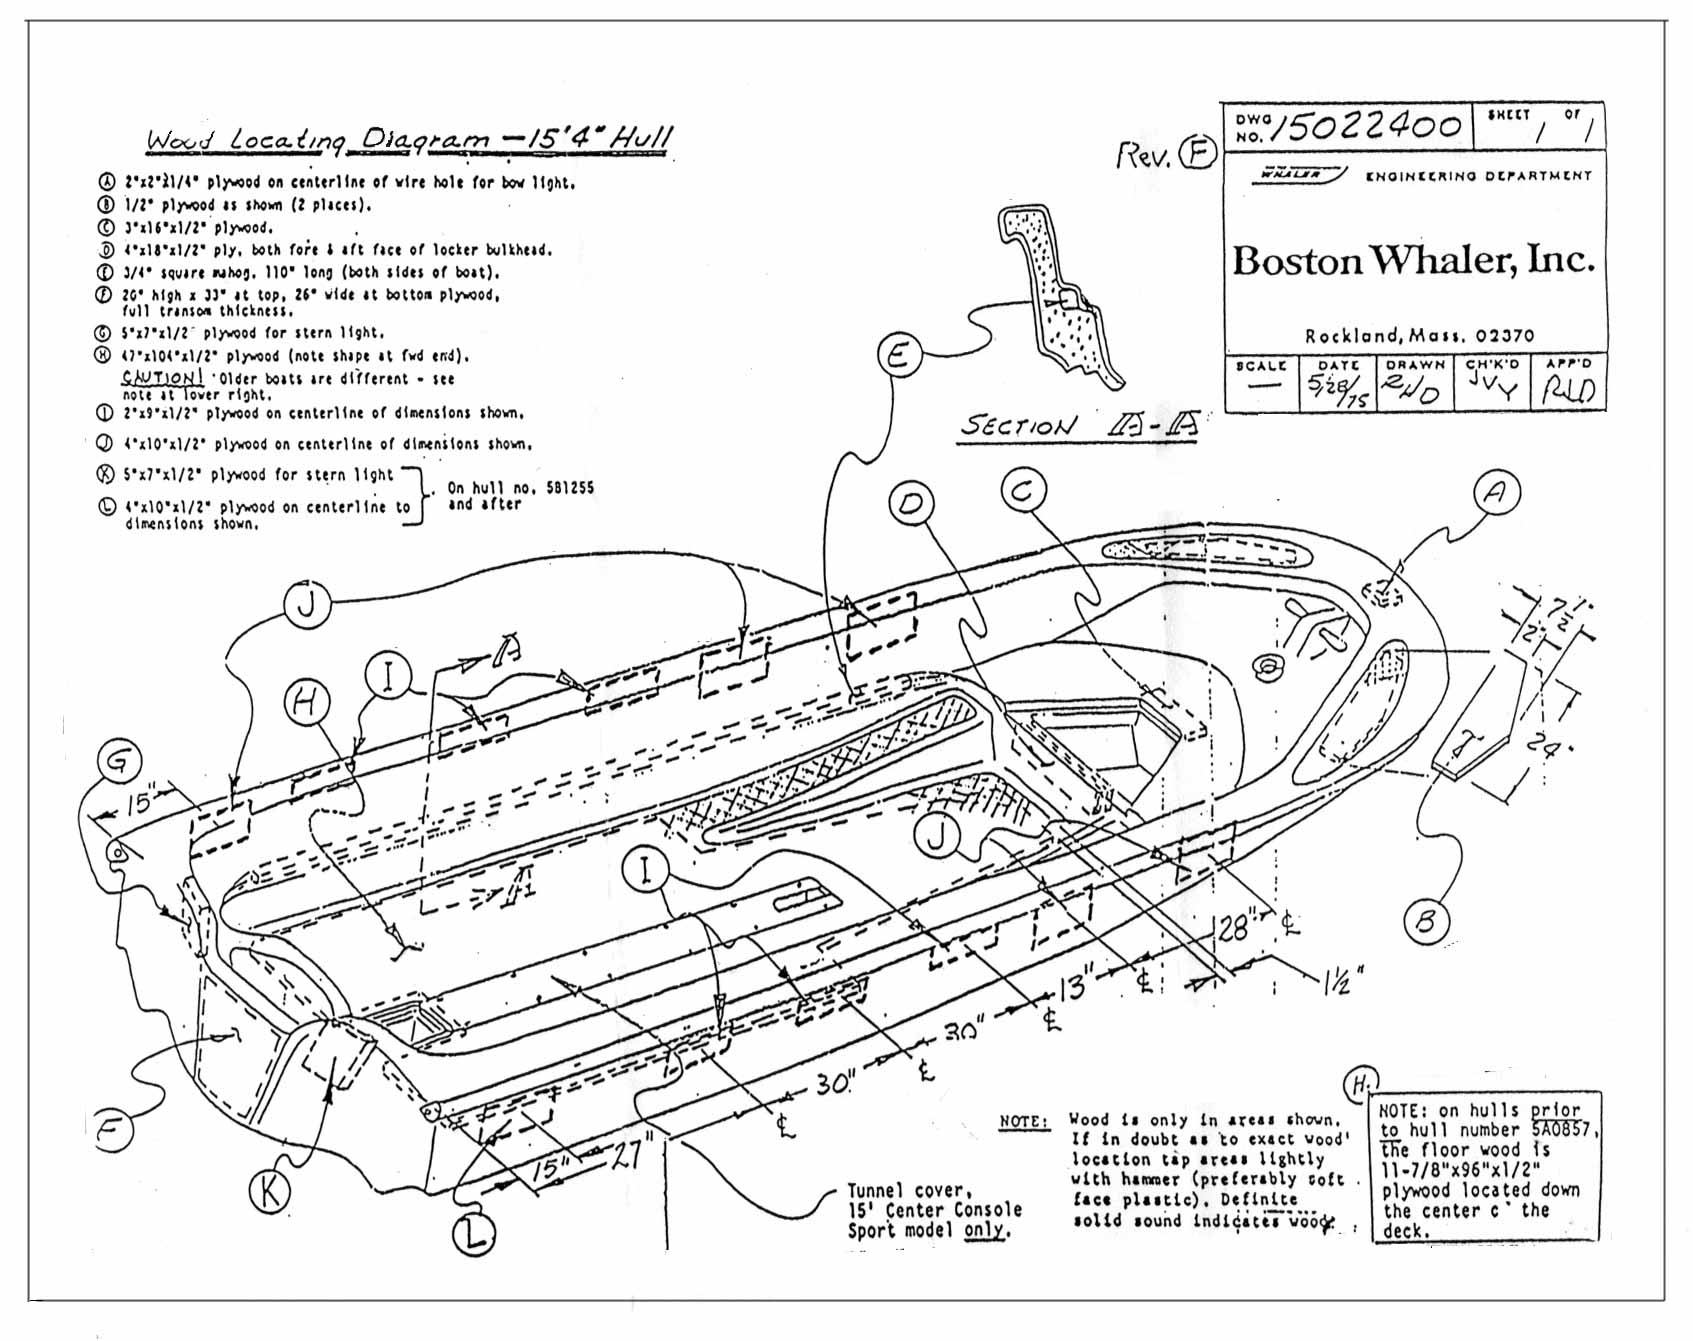 Classic Whaler: Boston Whaler: Reference: Available Drawings